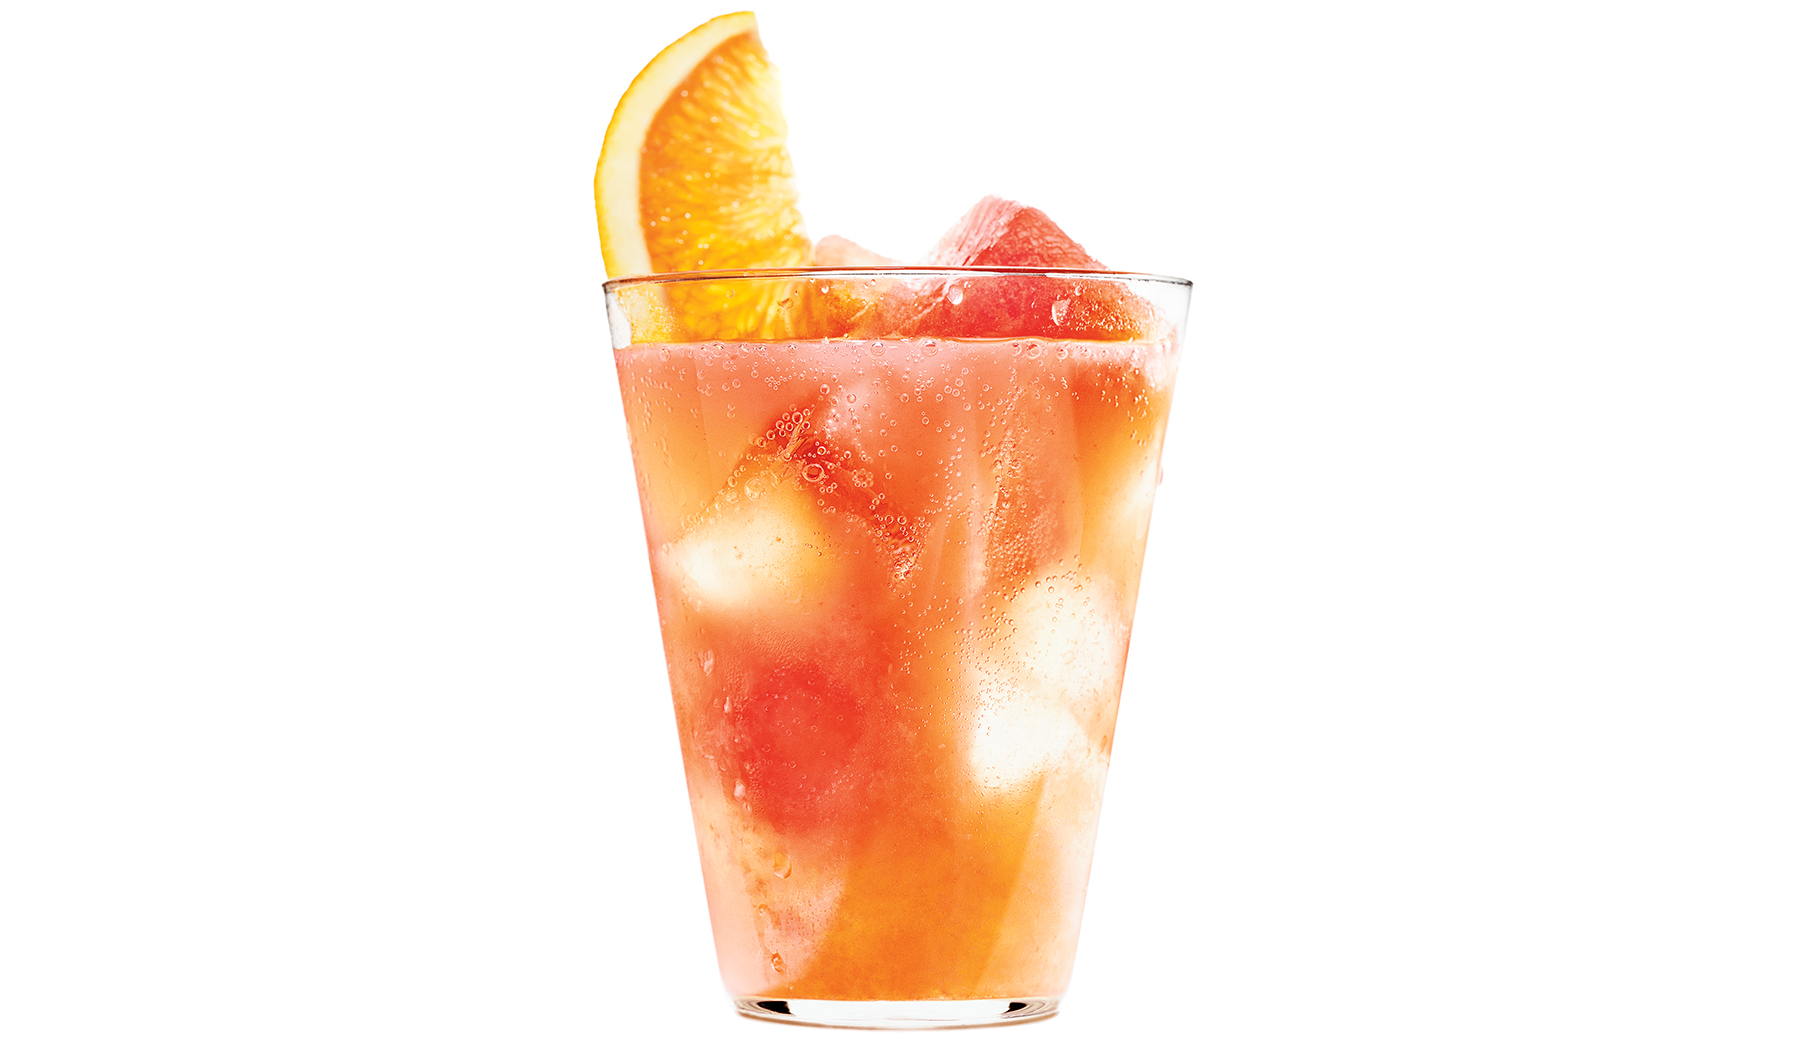 Grapefruit and Blood Orange Spritz With Campari Ice Cubes